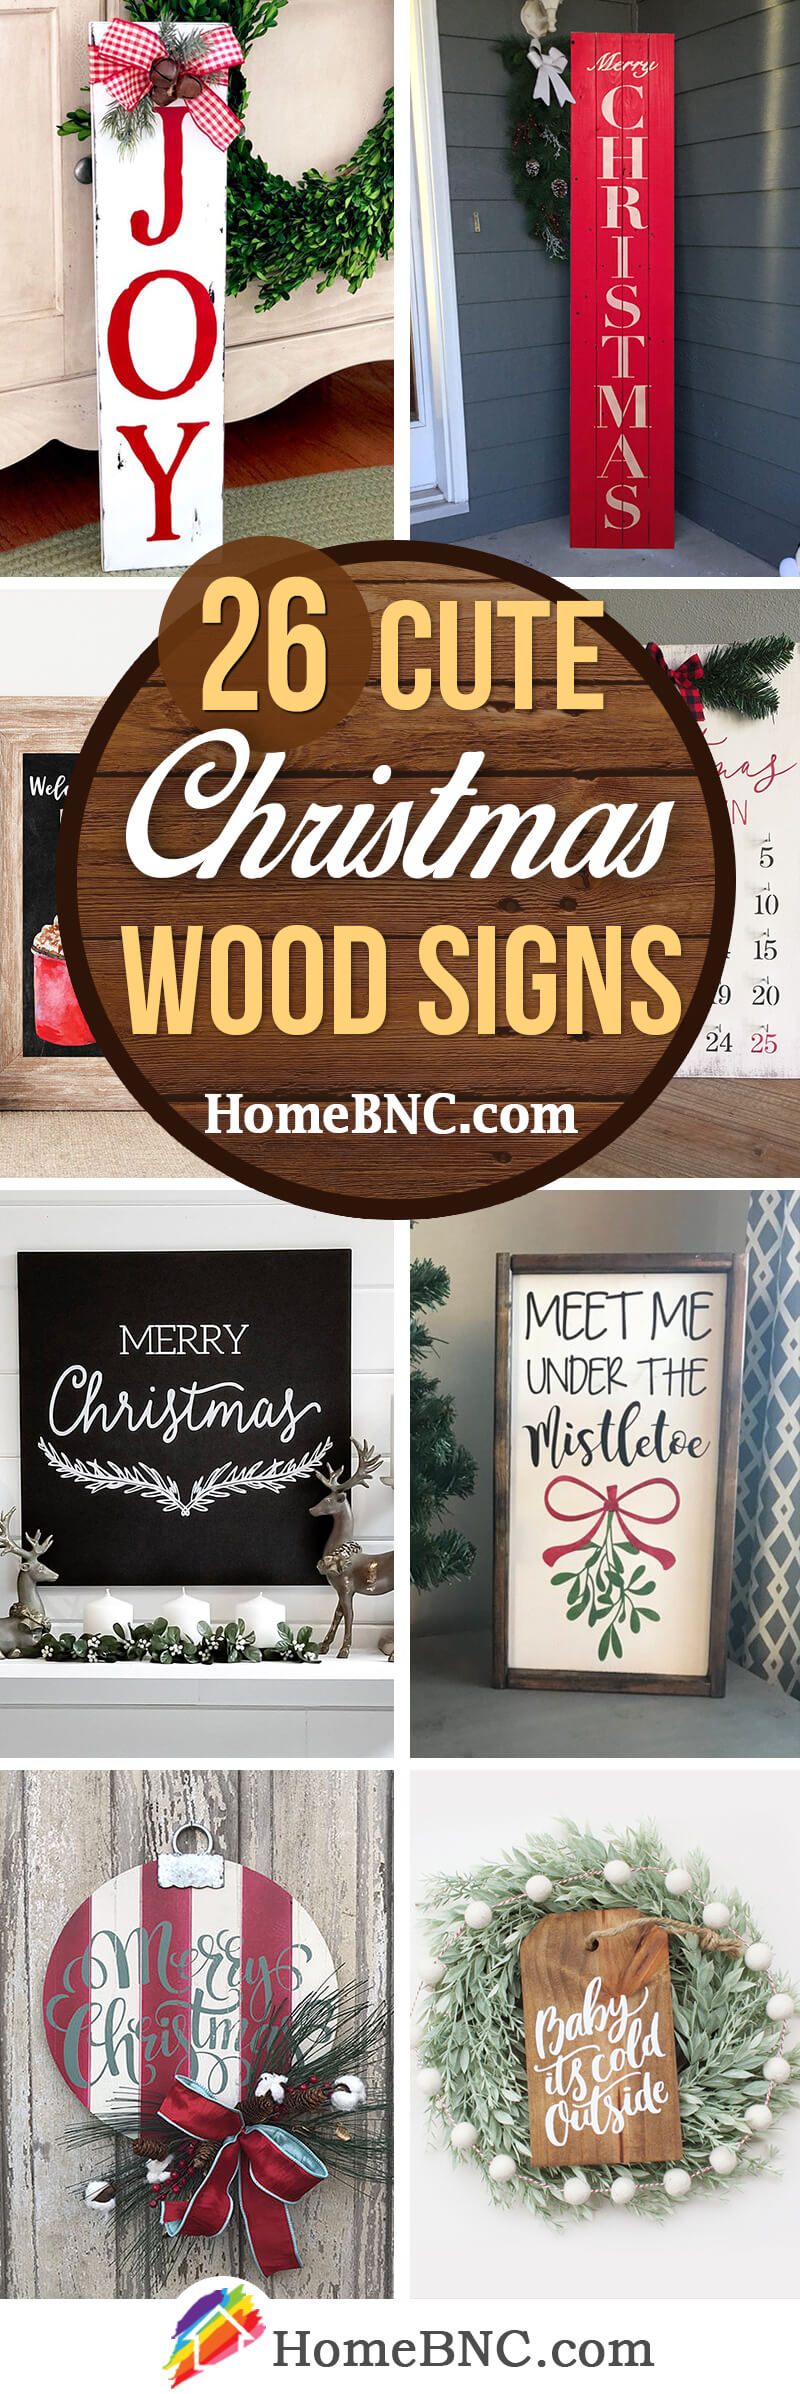 Christmas Wood Sign Ideas